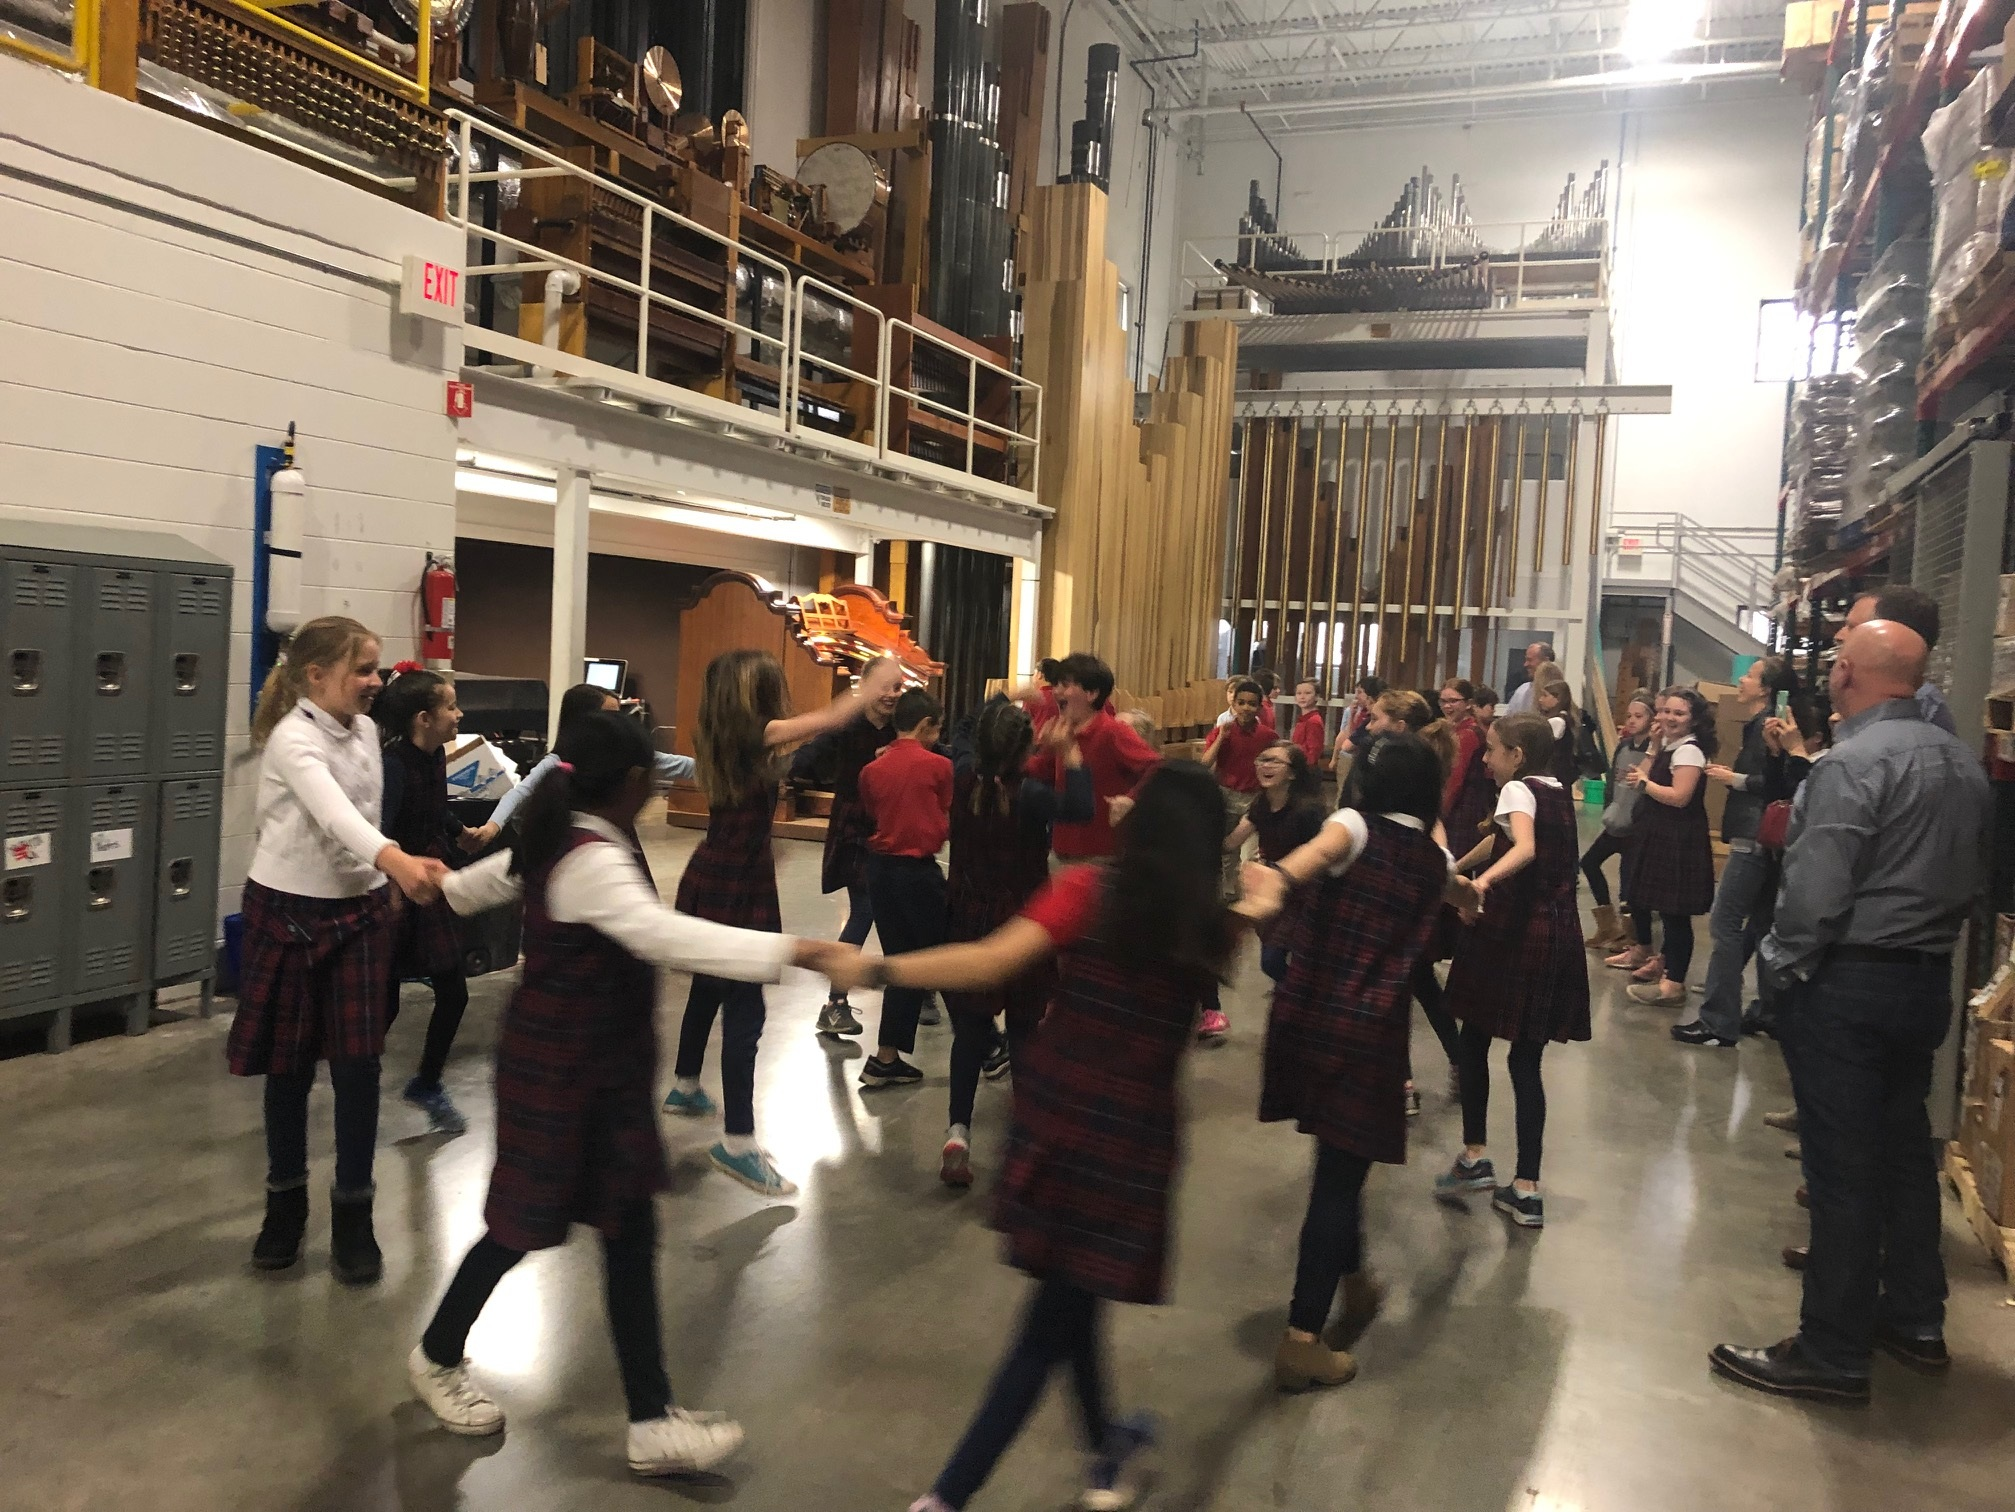 Dancing to the organ music in the warehouse! -